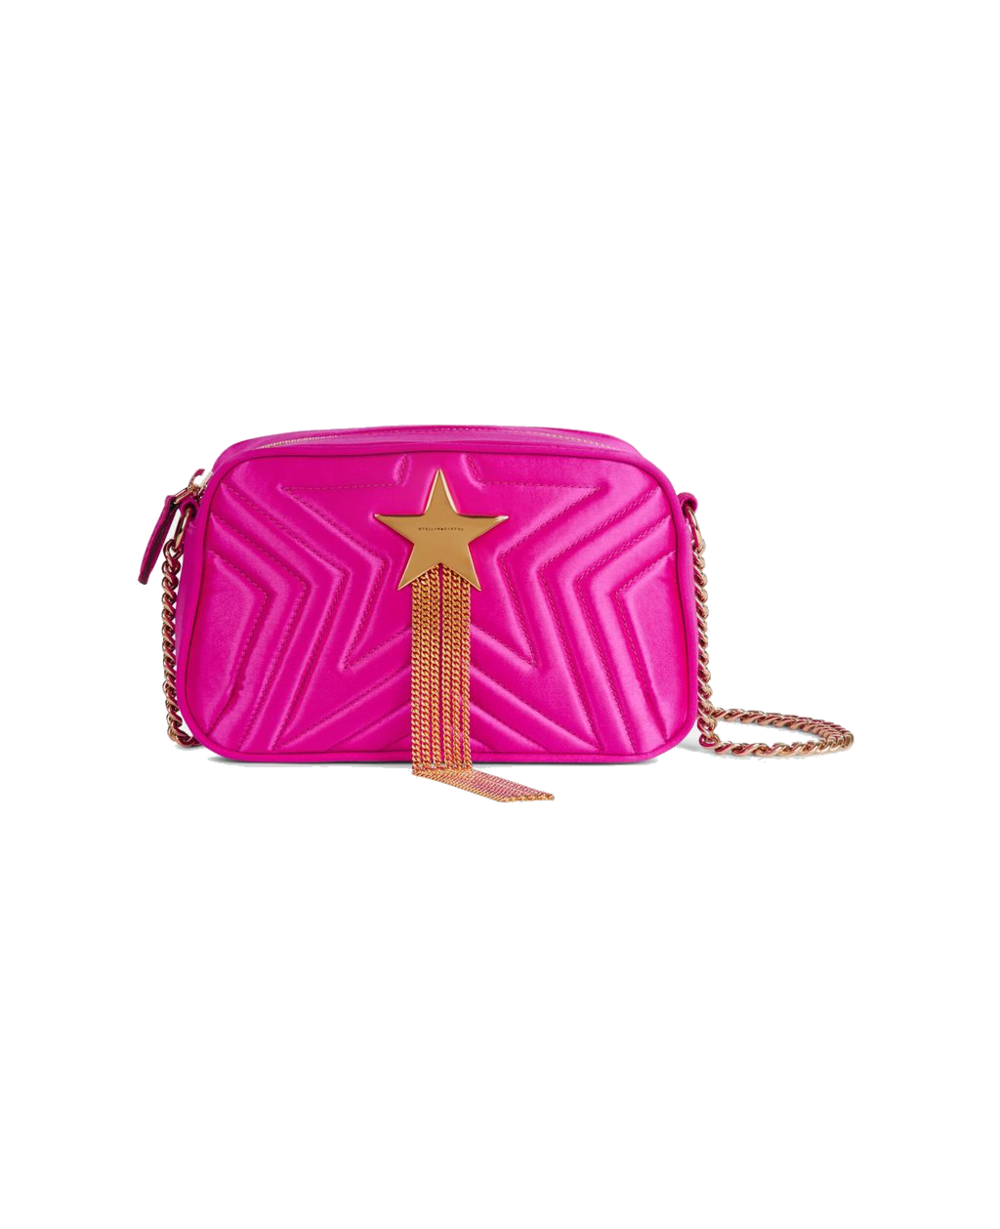 stella mccartney pink + star quilted bag